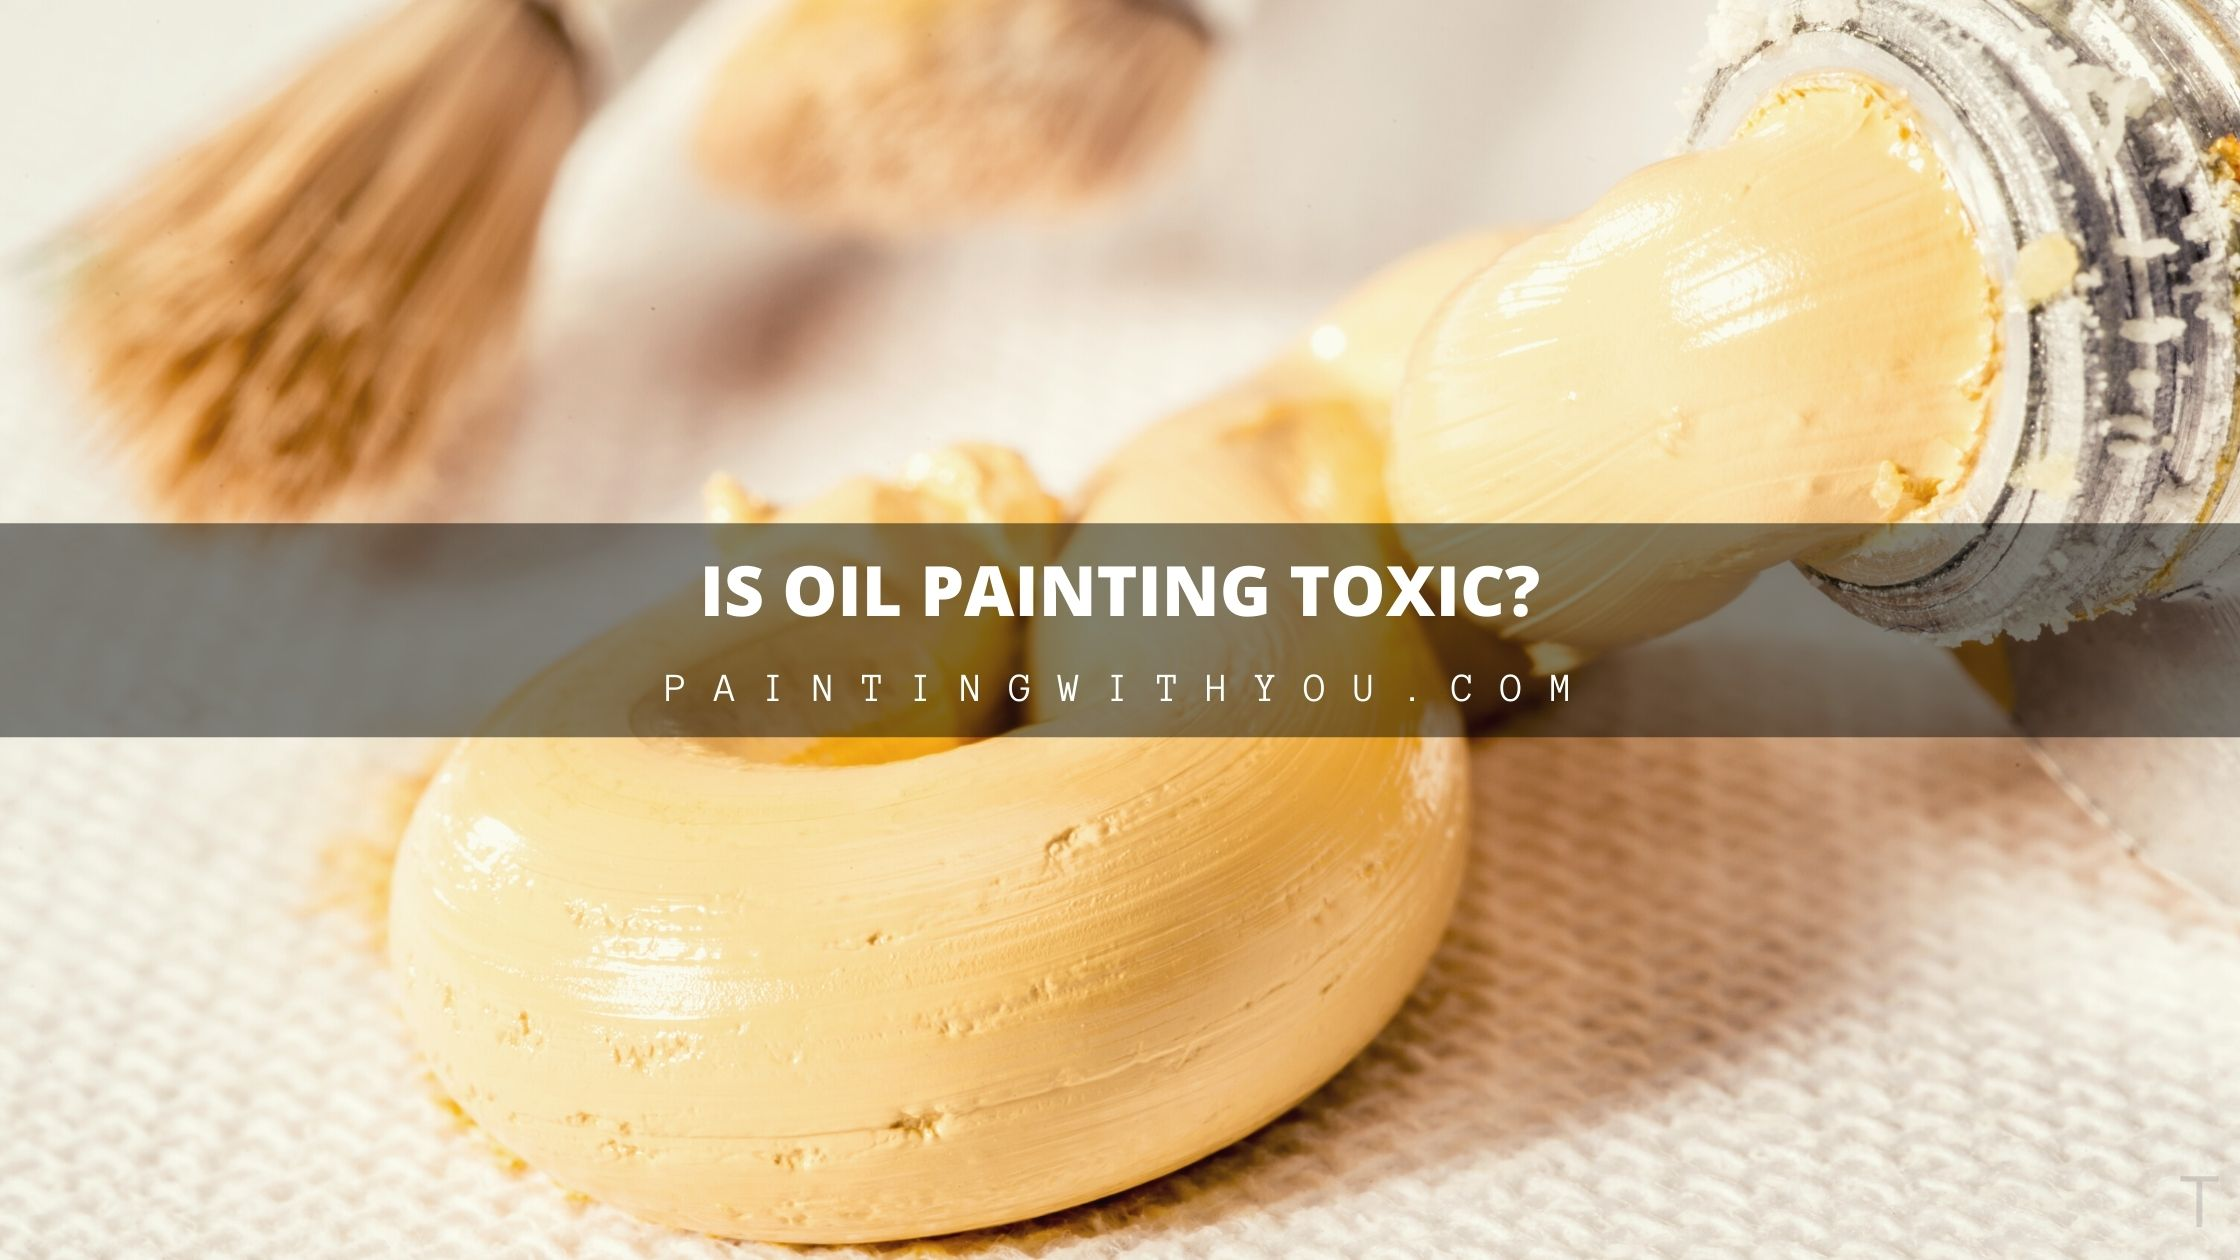 can Oil Paint be Toxic